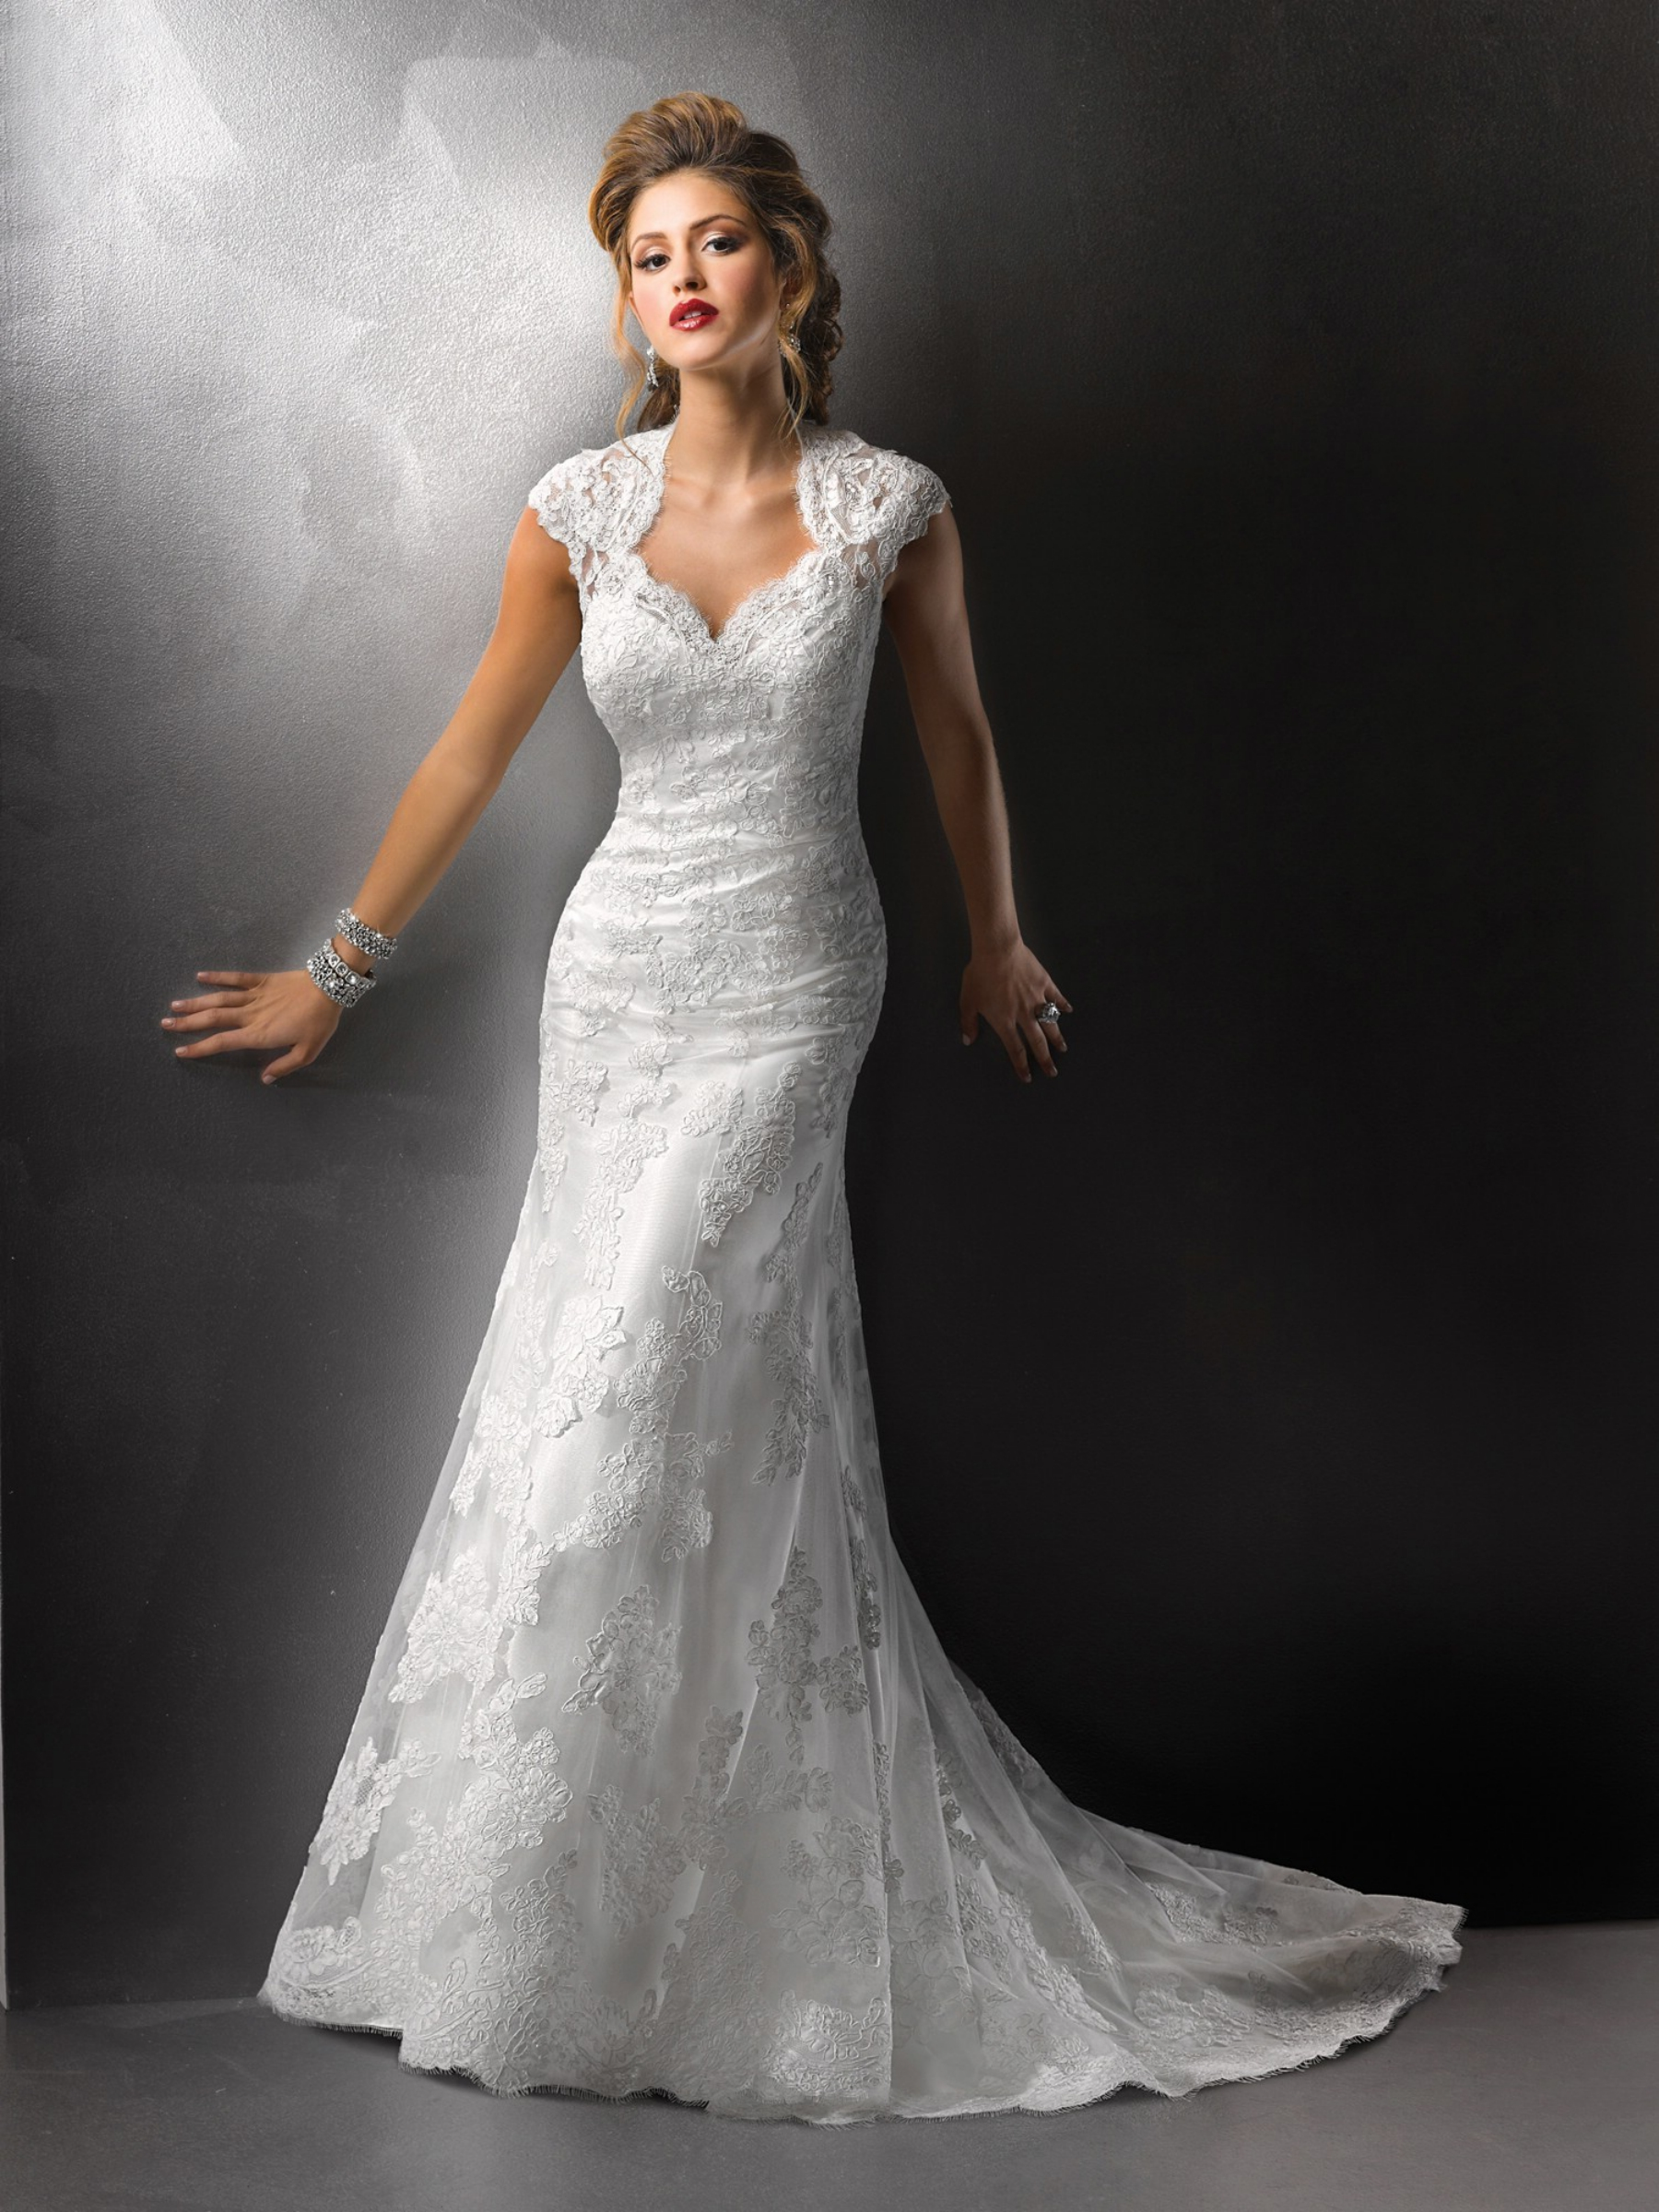 14 cheap wedding dresses under 100 for Where to buy cheap wedding dresses online